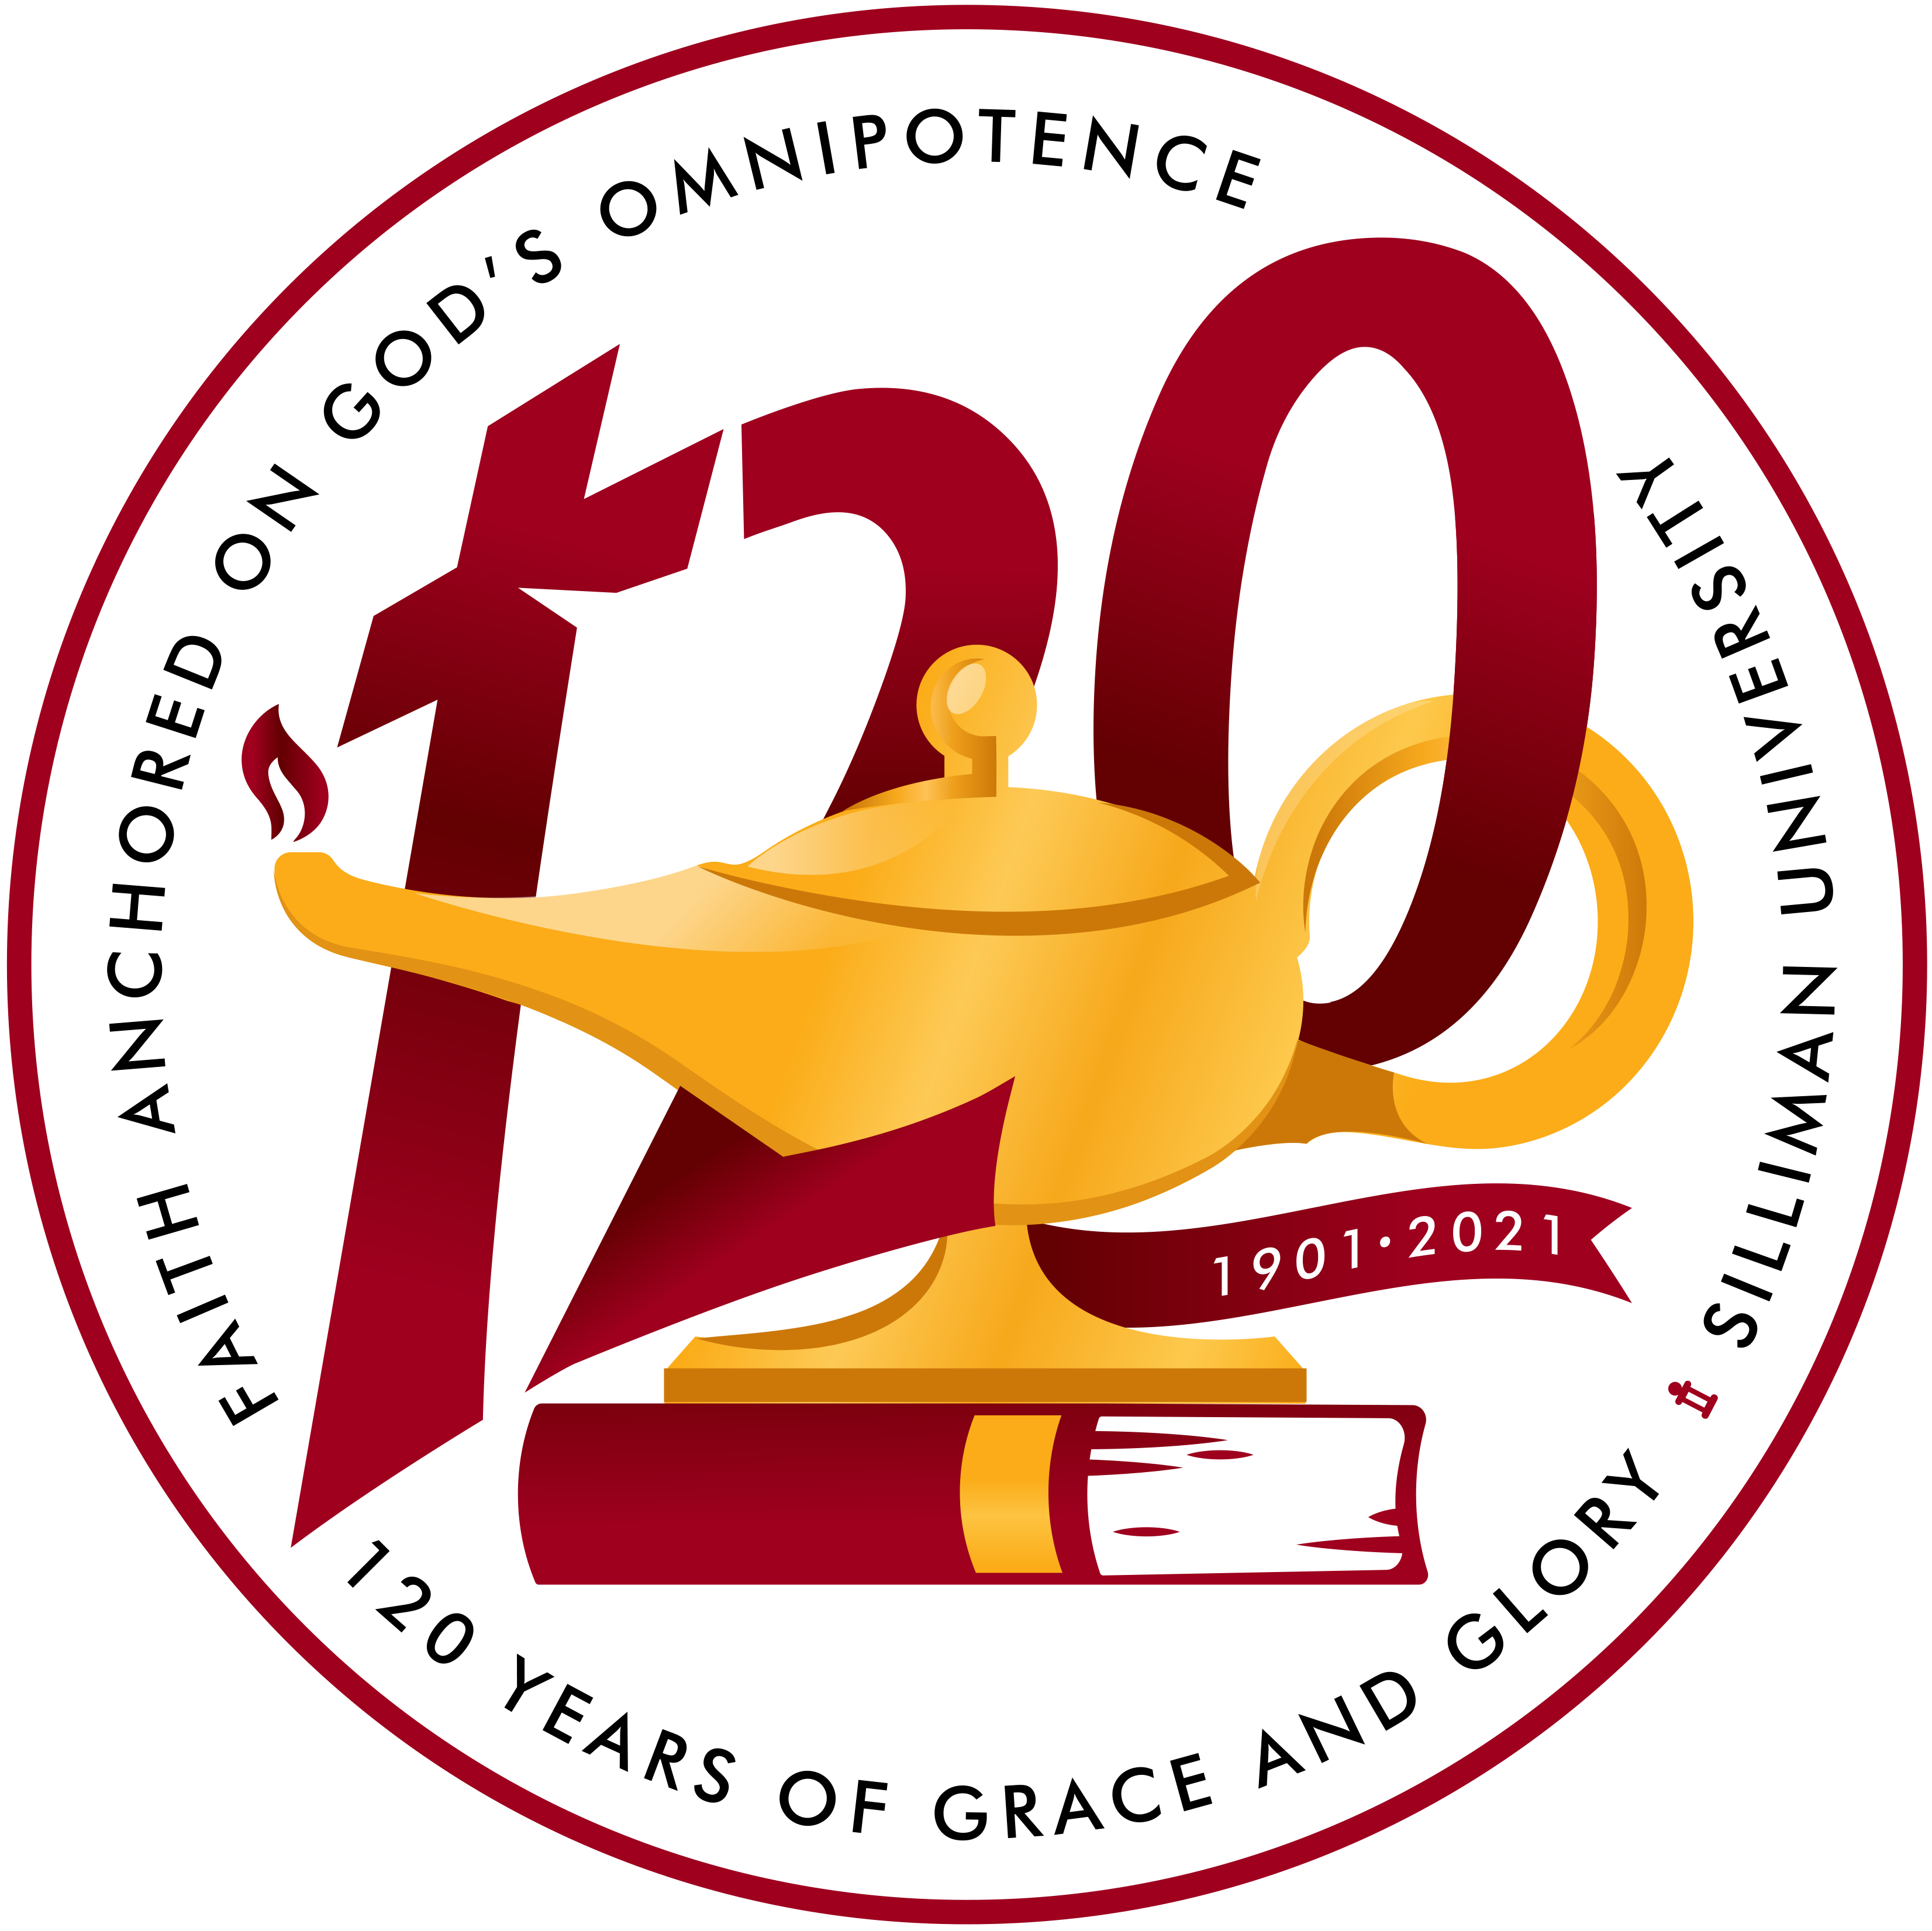 120th Founder Day Calendar of Activities